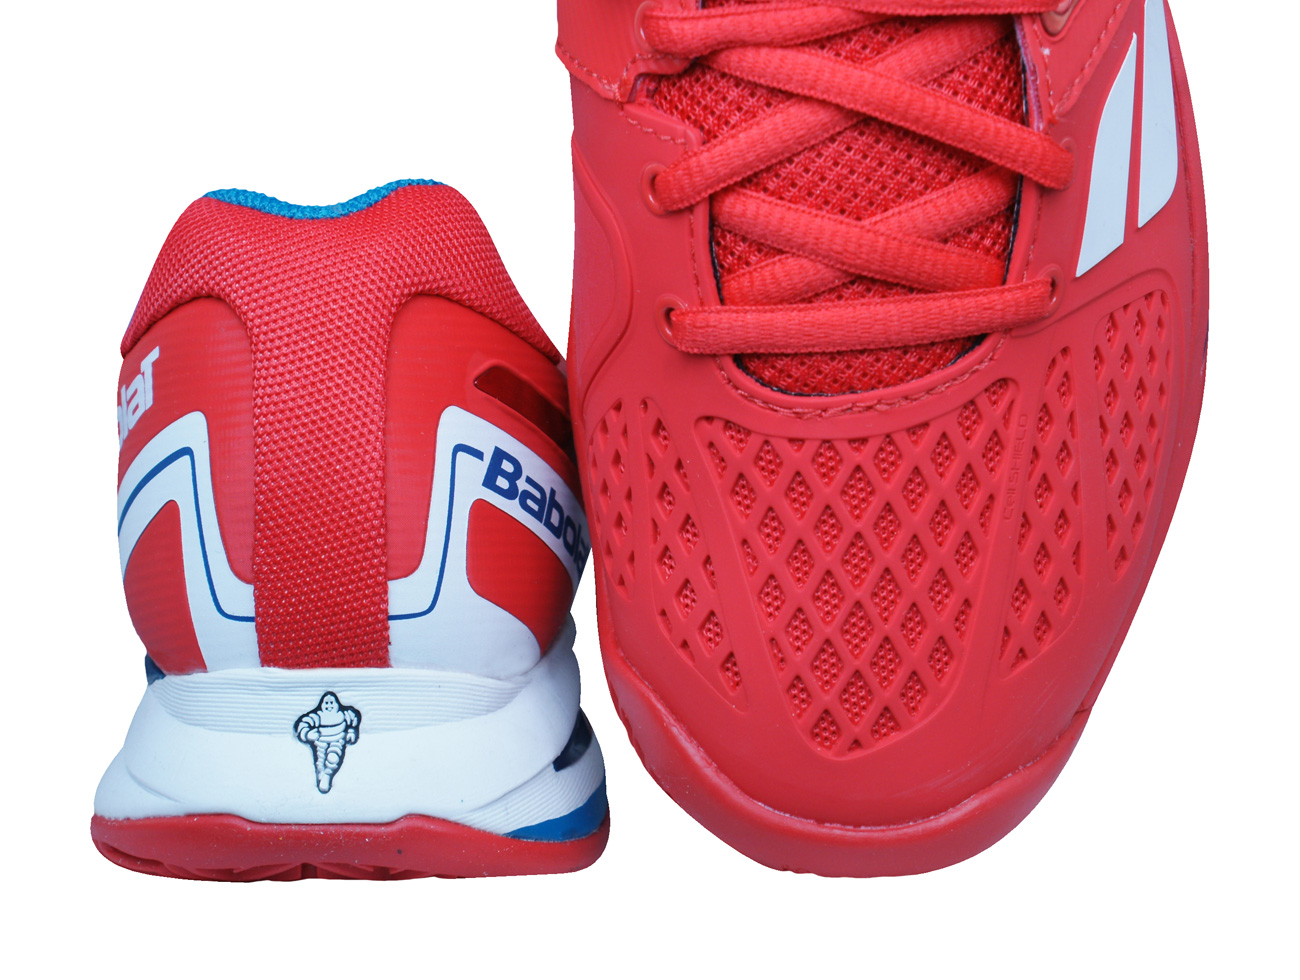 Which Tennis Player Uses Babolat Shoes